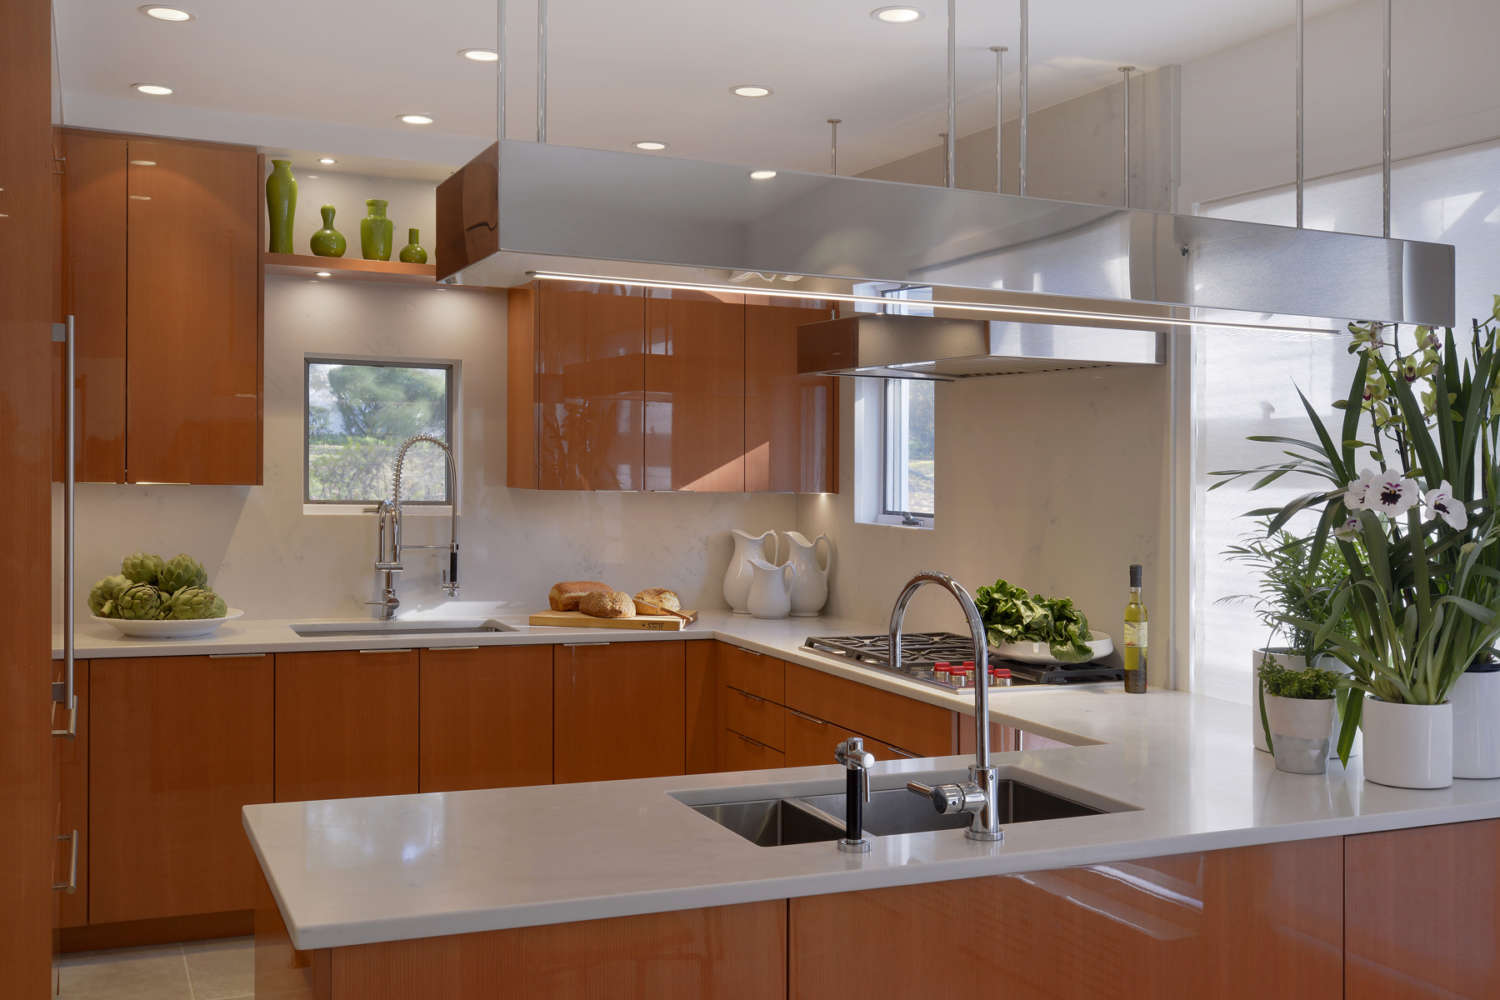 Contemporary kitchen features flat panel, frameless fully custom Artcraft cabinetry in high gloss rift cut cherry, brushed stainless hardware, white quartz countertops, and suspended brushed staineless task lighting. Design by Goran Savic of Bilotta Kitchens.